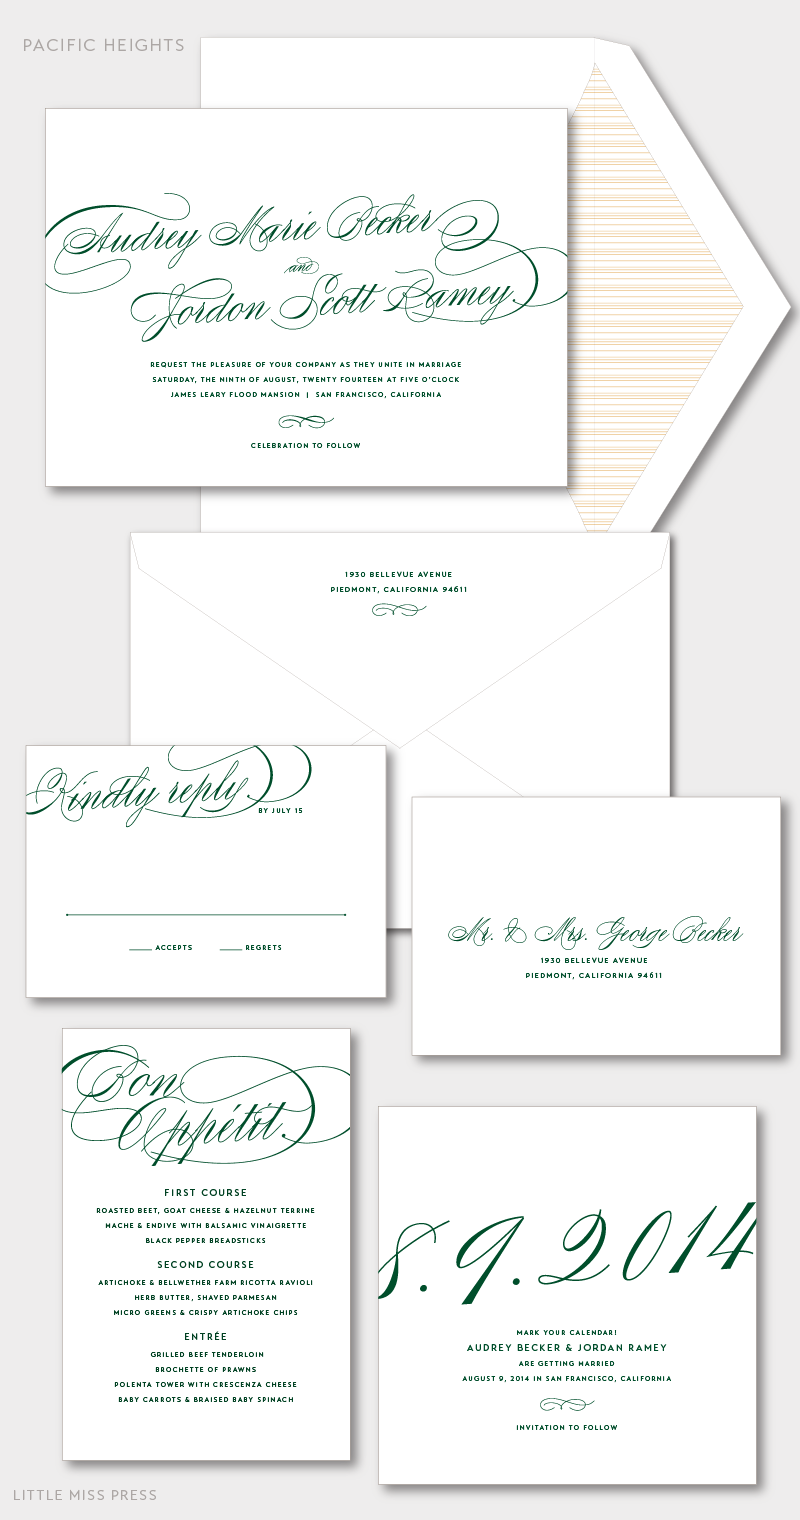 san_francisco_wedding_invitation